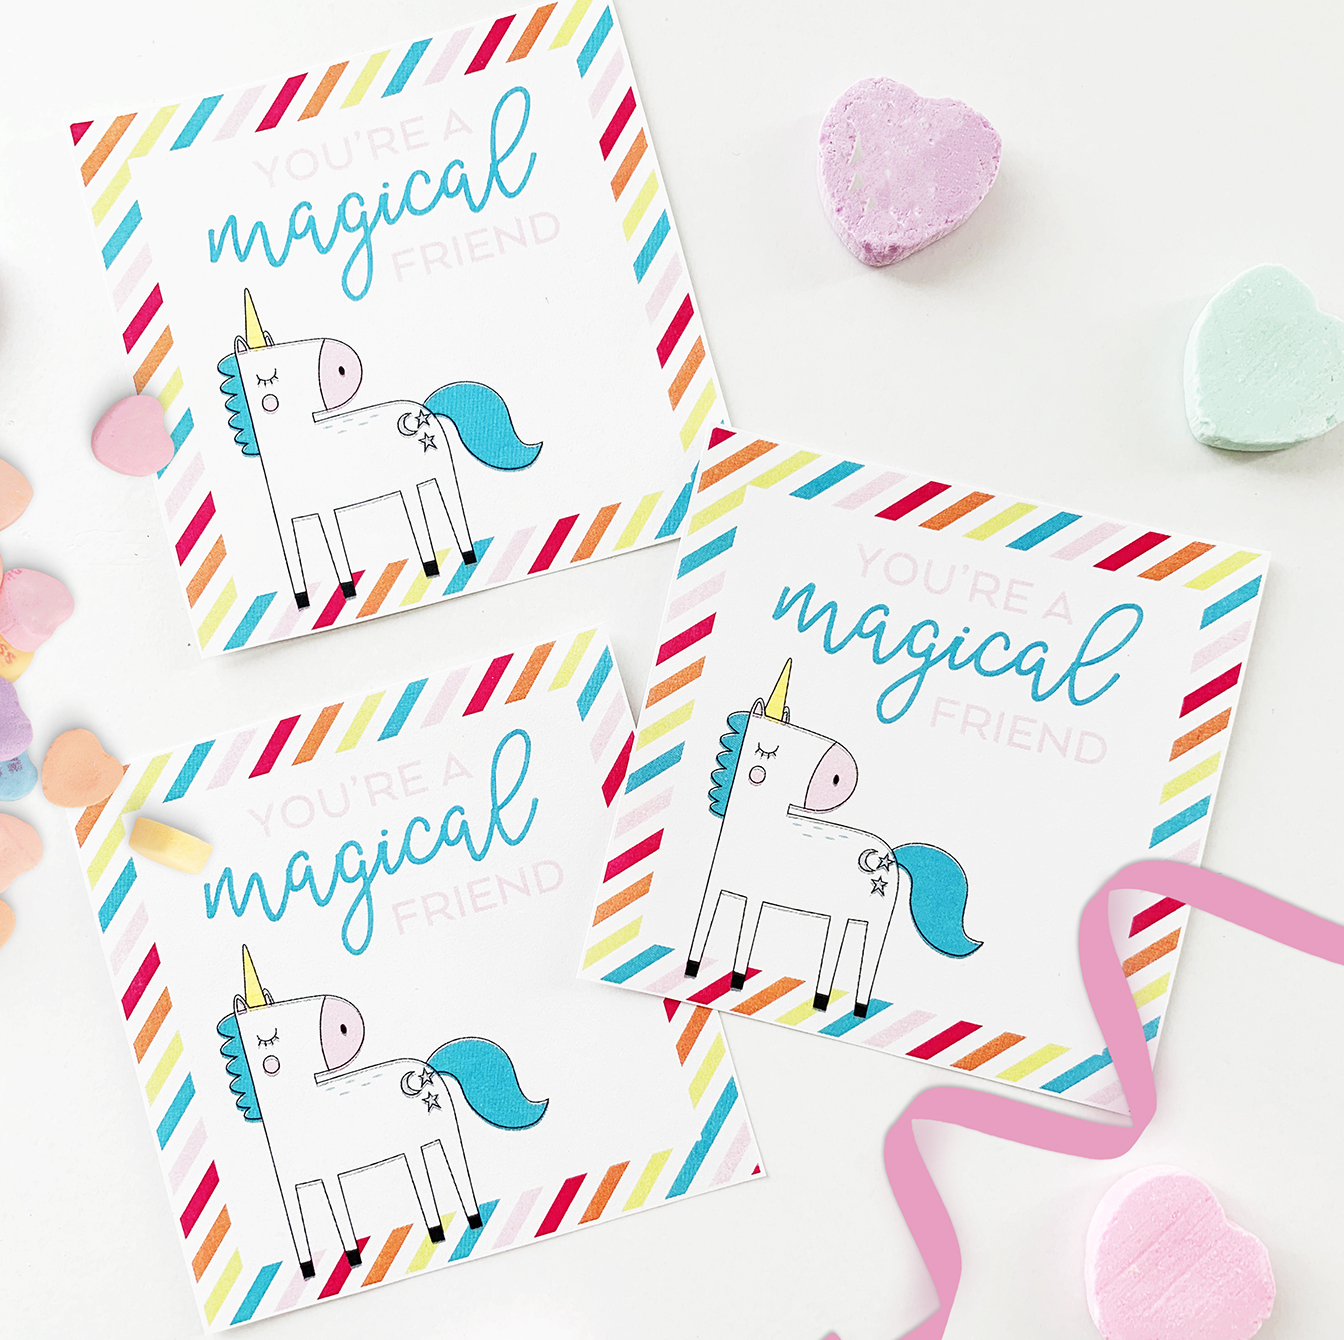 photo relating to Free Printable Unicorn Valentines identify Cost-free Unicorn Printable Valentine Playing cards - Pineapple Paper Co.